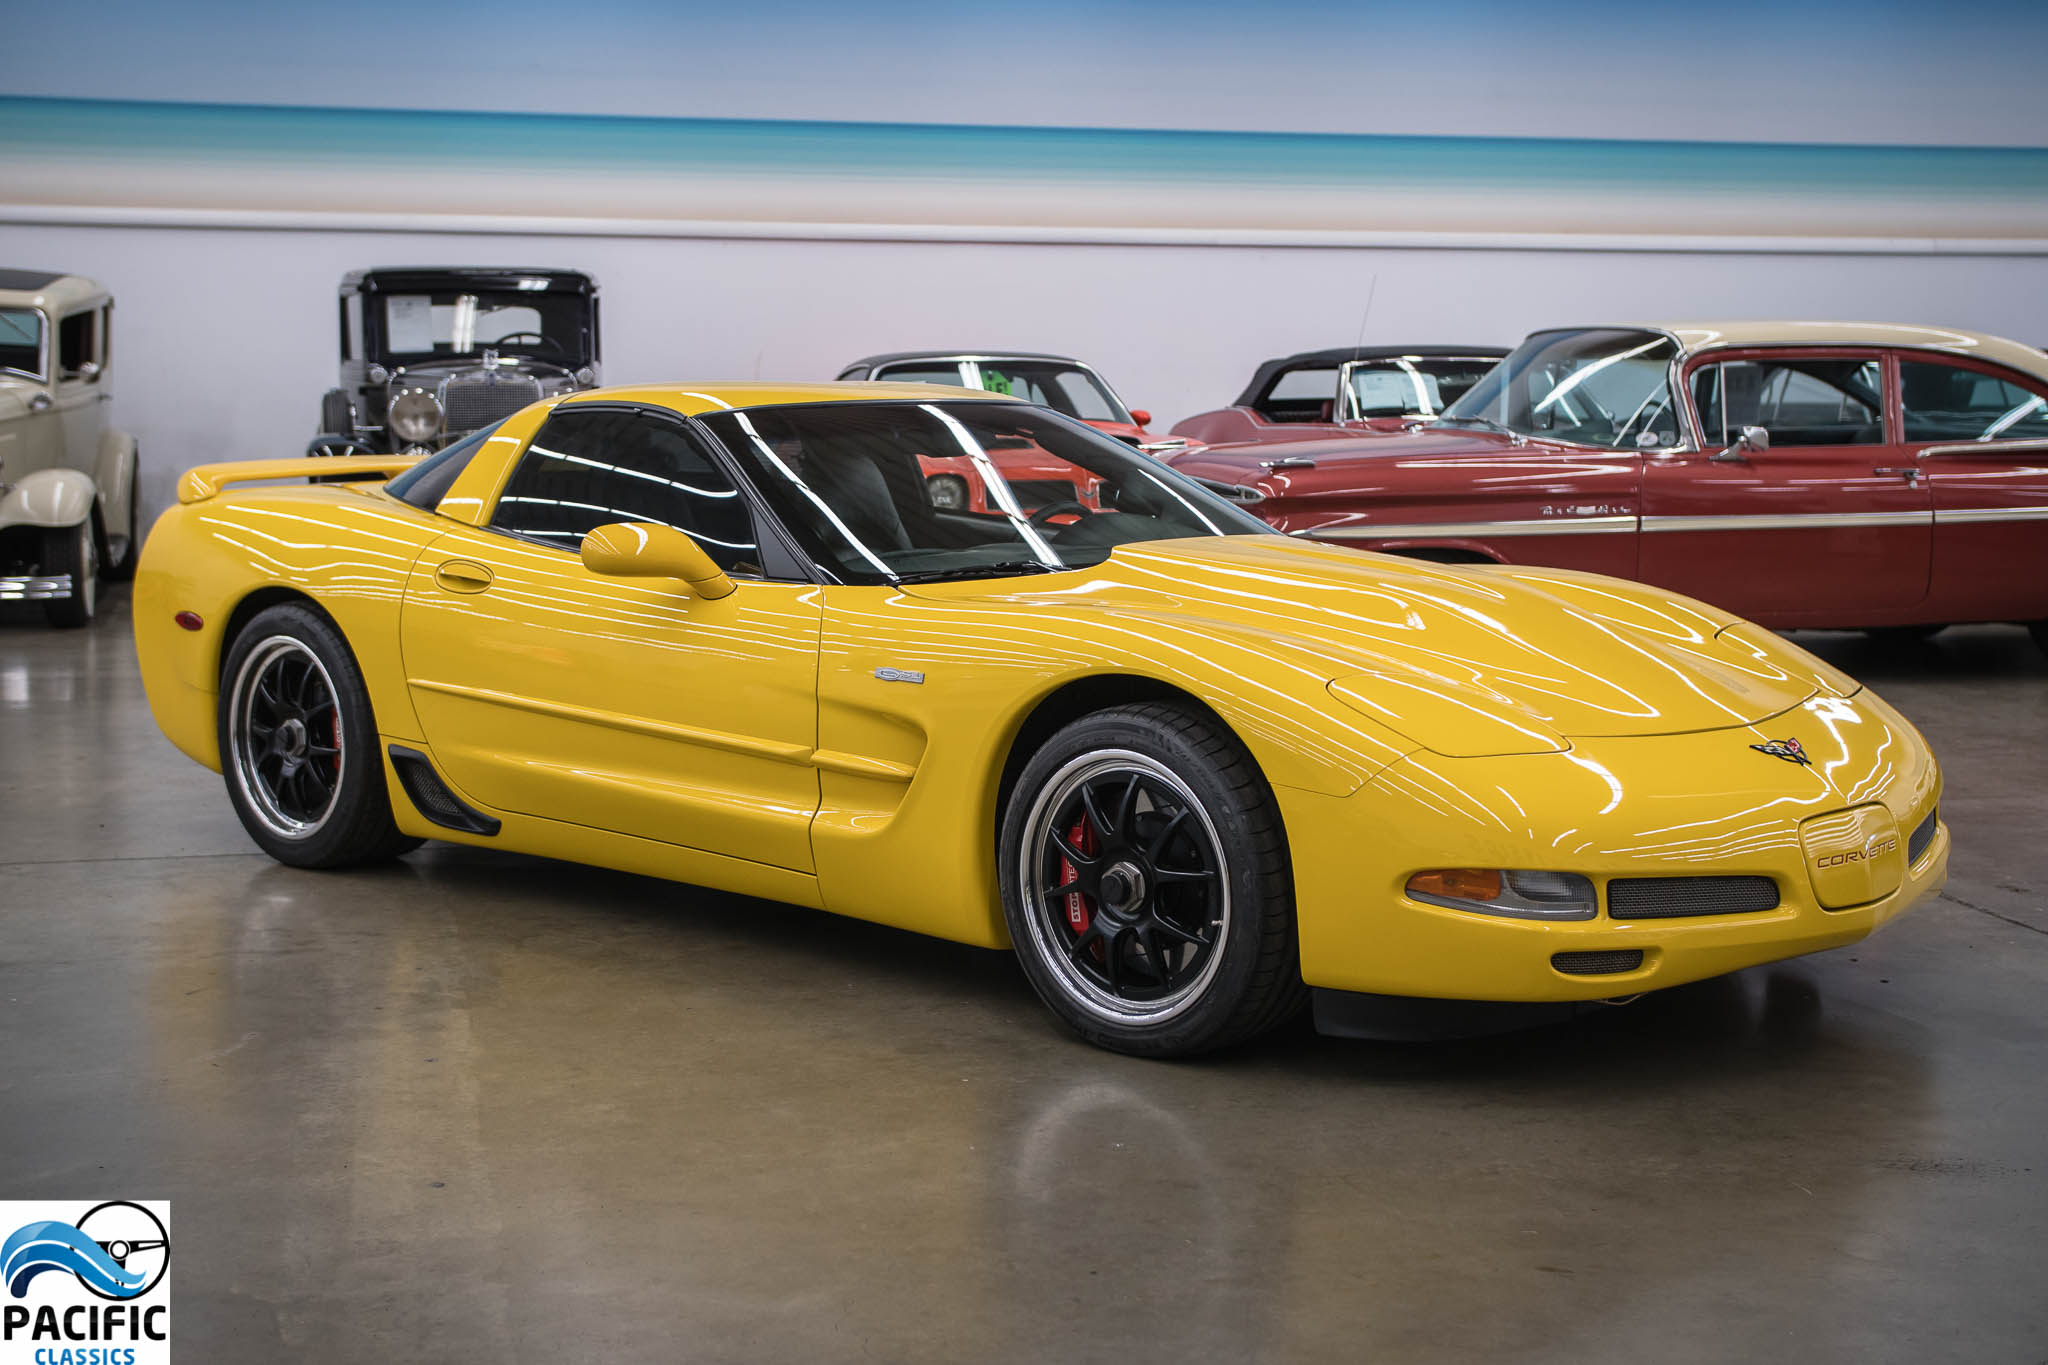 2002 Chevrolet Corvette Supercharged